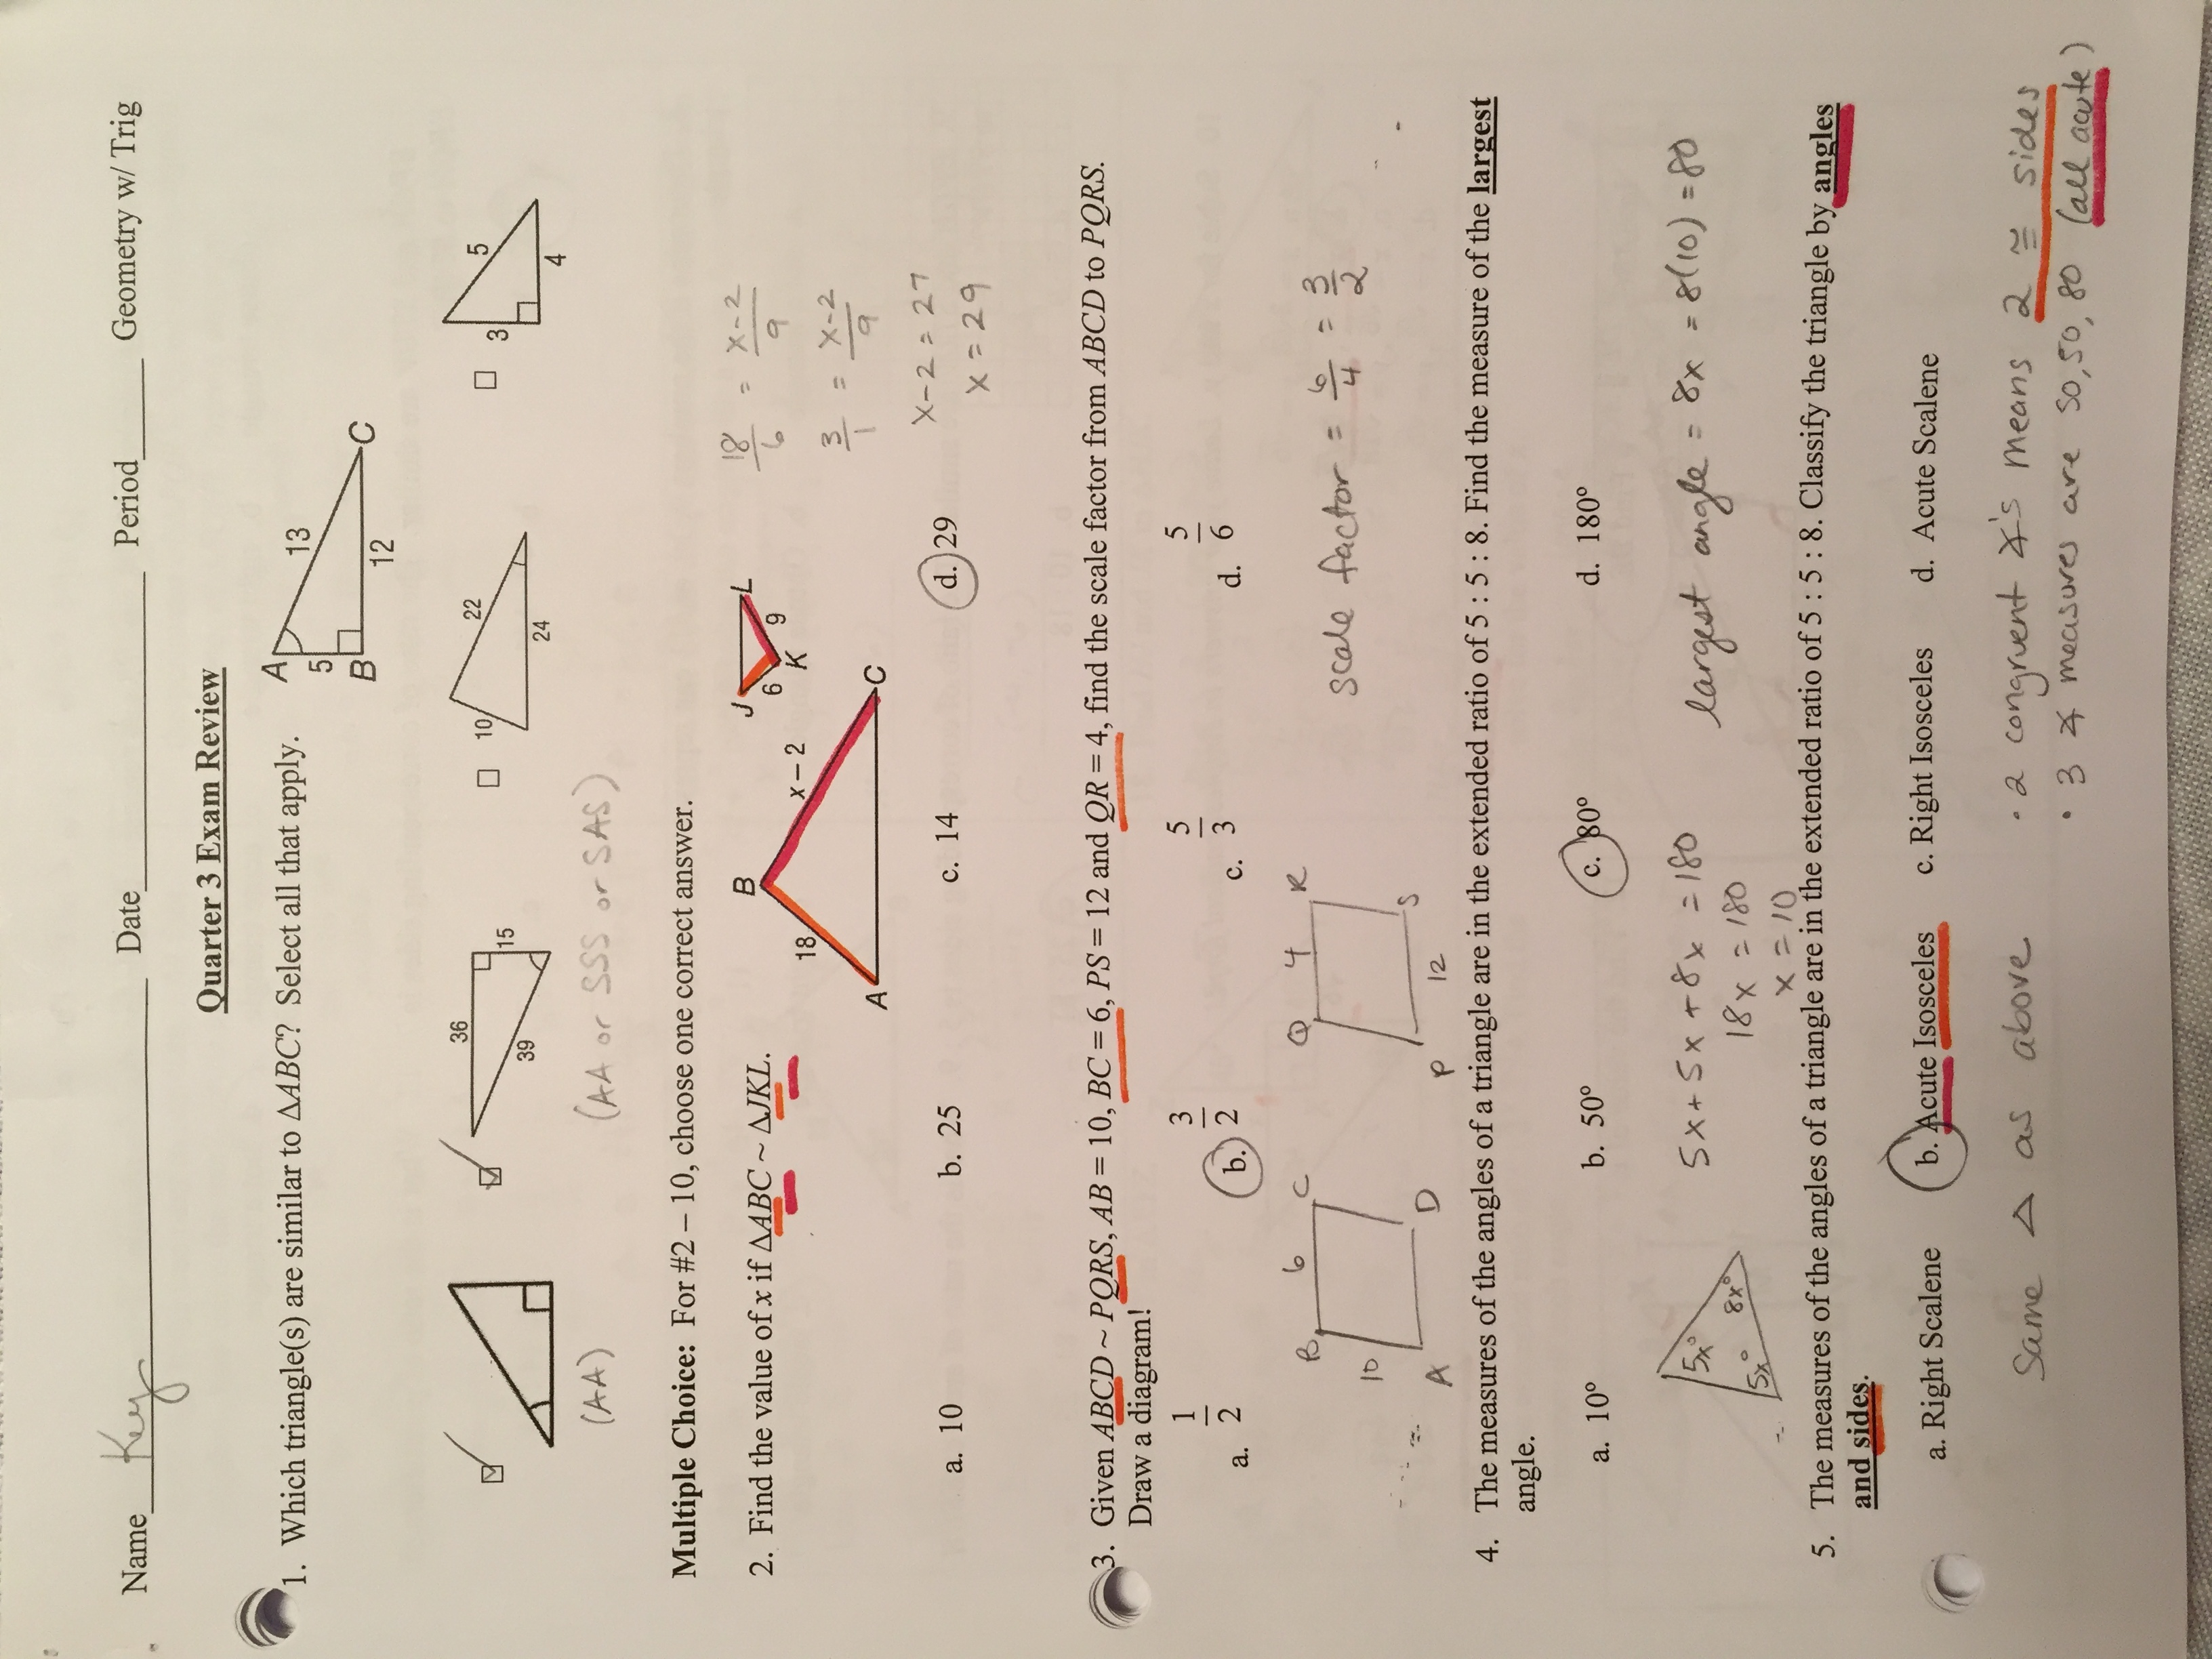 Quarterly Review - page 1